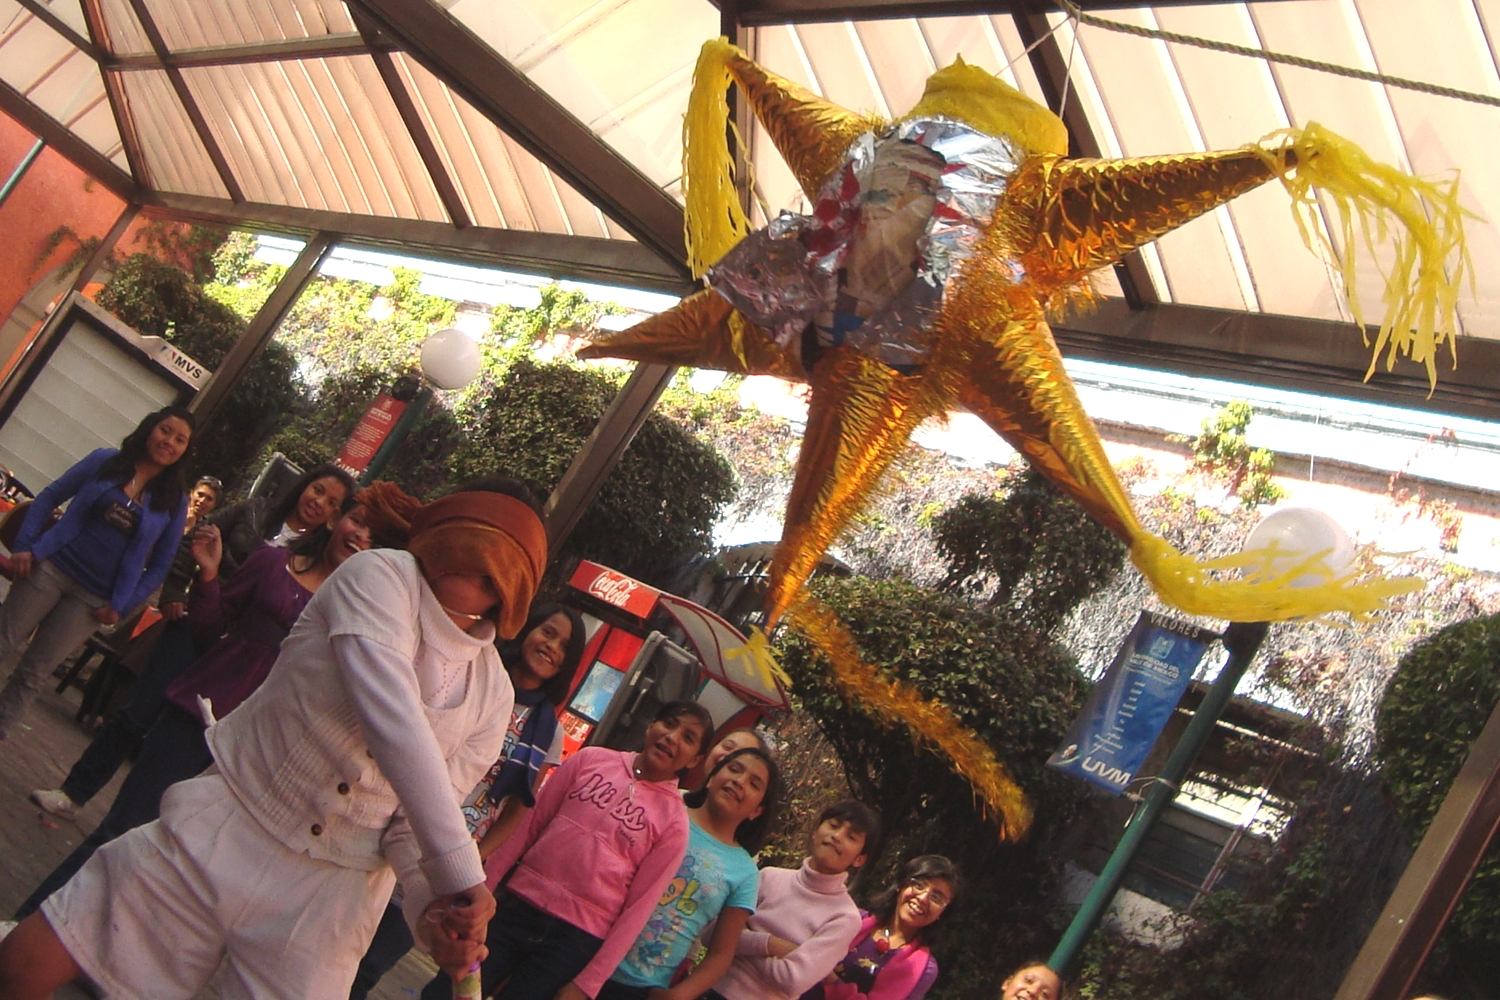 During las posadas in Mexico, piñatas filled with candy are brought to celebration.